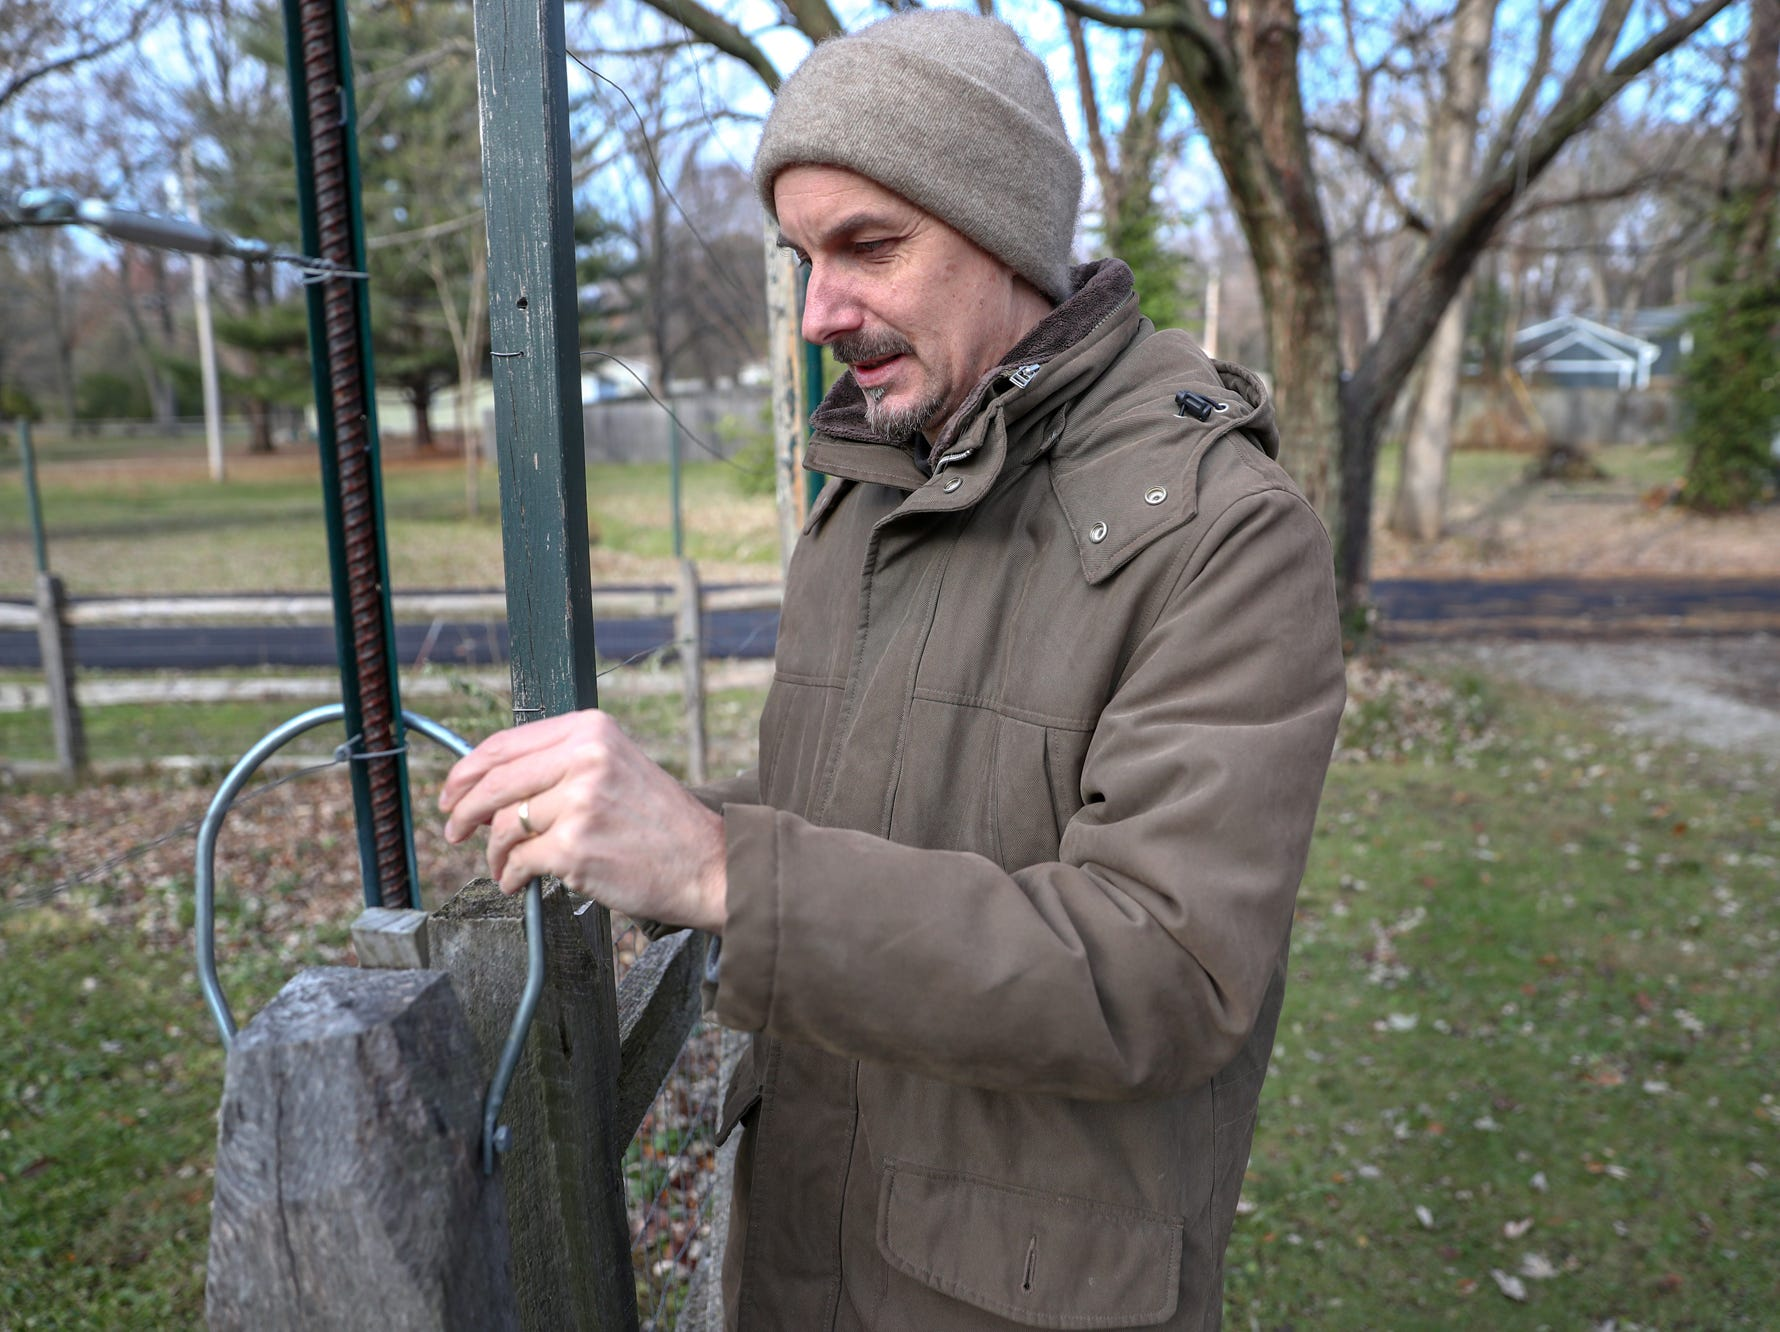 Adam Schwarz lifts the latch on a gate that leads to his three-acre yard in Carmel, Ind., on Friday, Nov. 16, 2018.